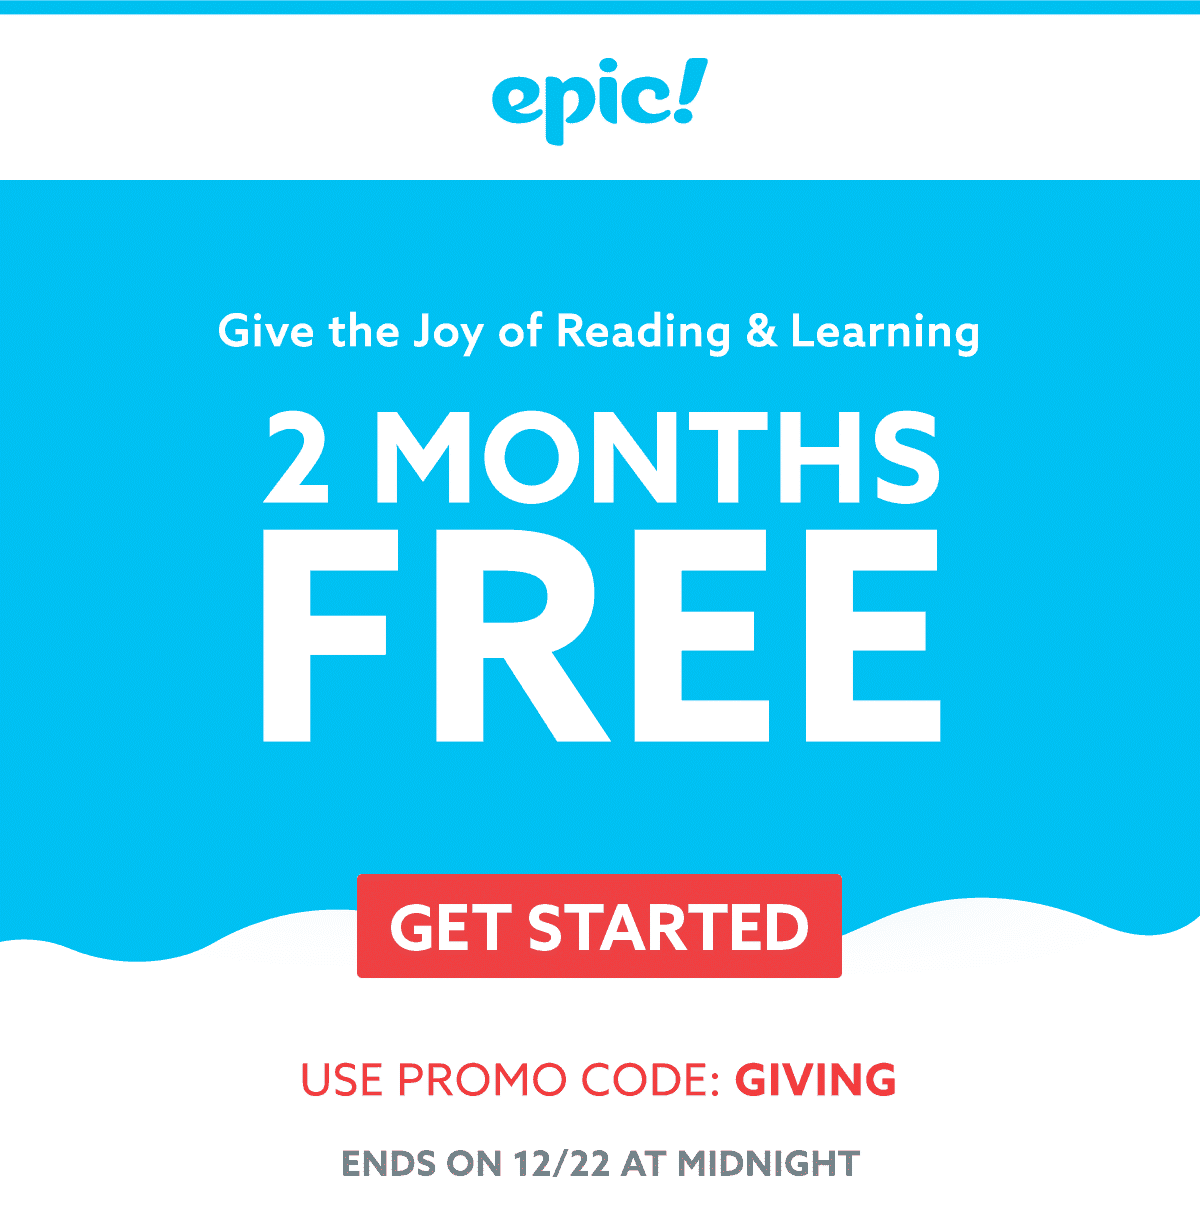 Epic! Kids Books Holiday Coupon: Get 2 Months FREE!